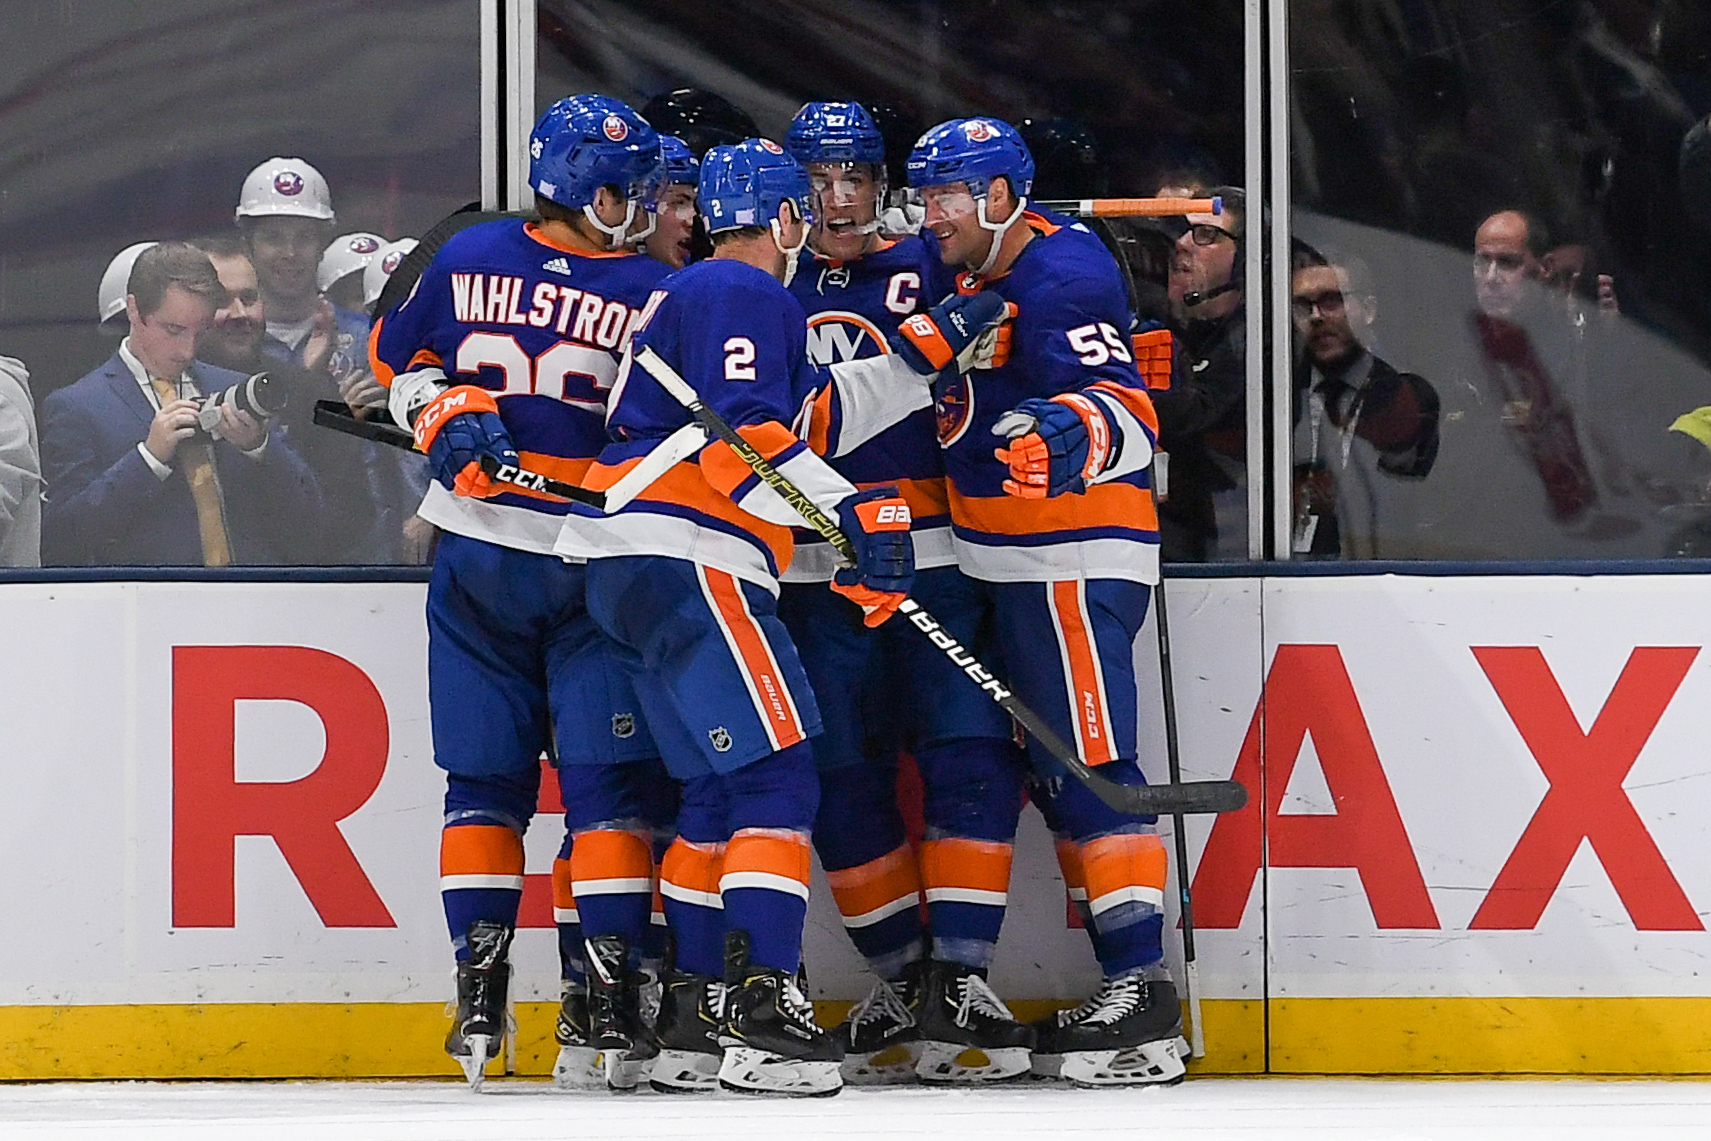 Nov 1, 2019; Uniondale, NY, USA; New York Islanders celebrate the goal by New York Islanders center Anders Lee (27) against the Tampa Bay Lightning during the third period at Nassau Veterans Memorial Coliseum. Mandatory Credit: Dennis Schneidler-USA TODAY Sports